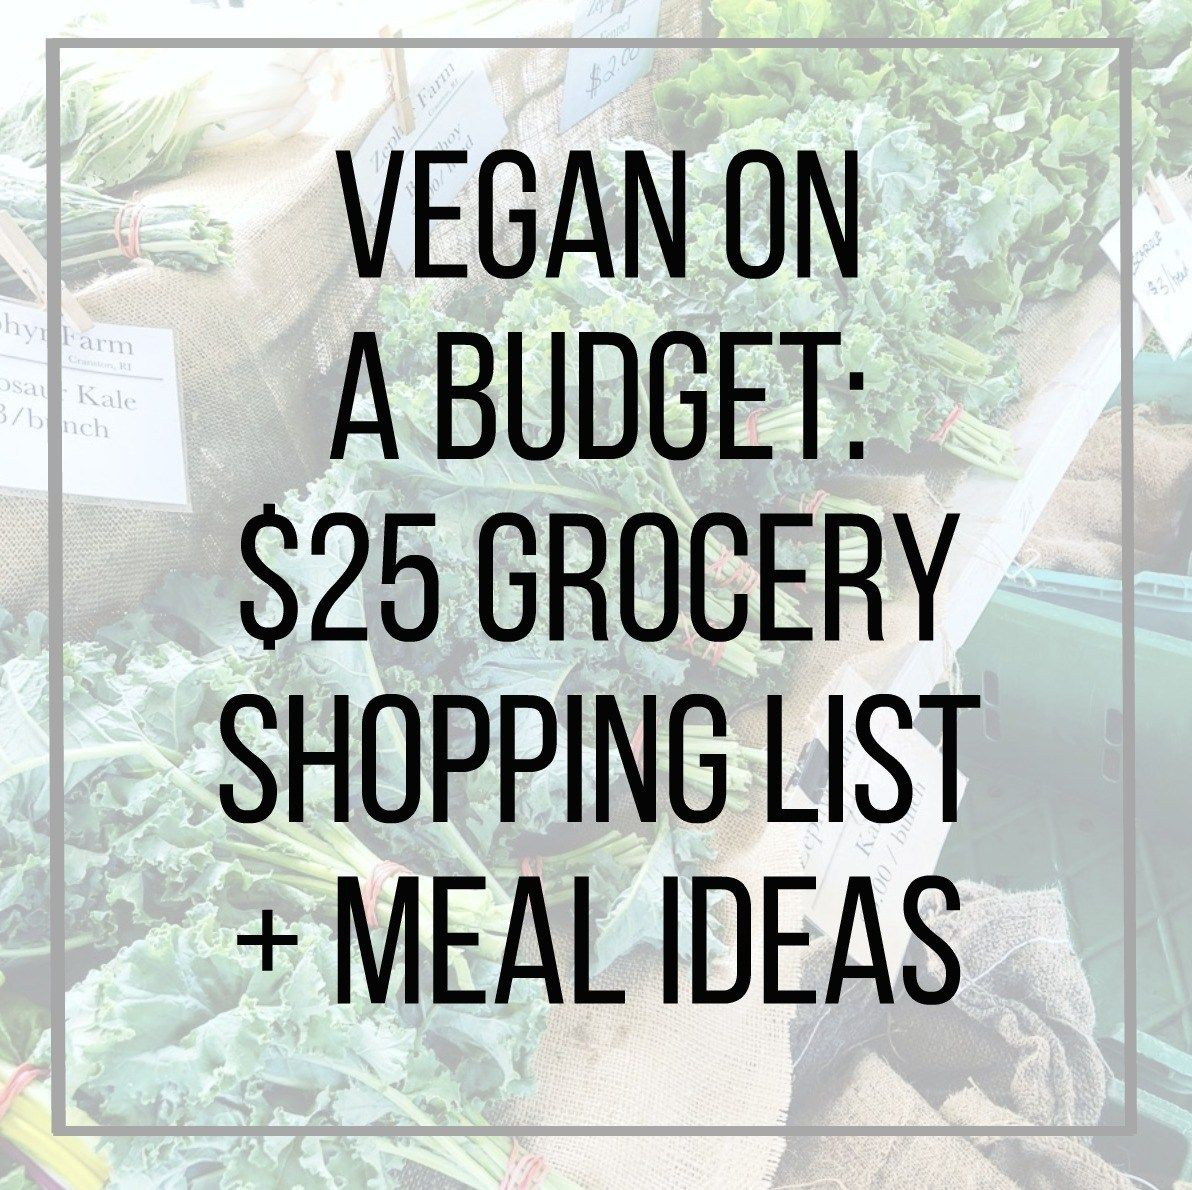 Vegan on a Budget: $25 Grocery Shopping List + Meal Ideas